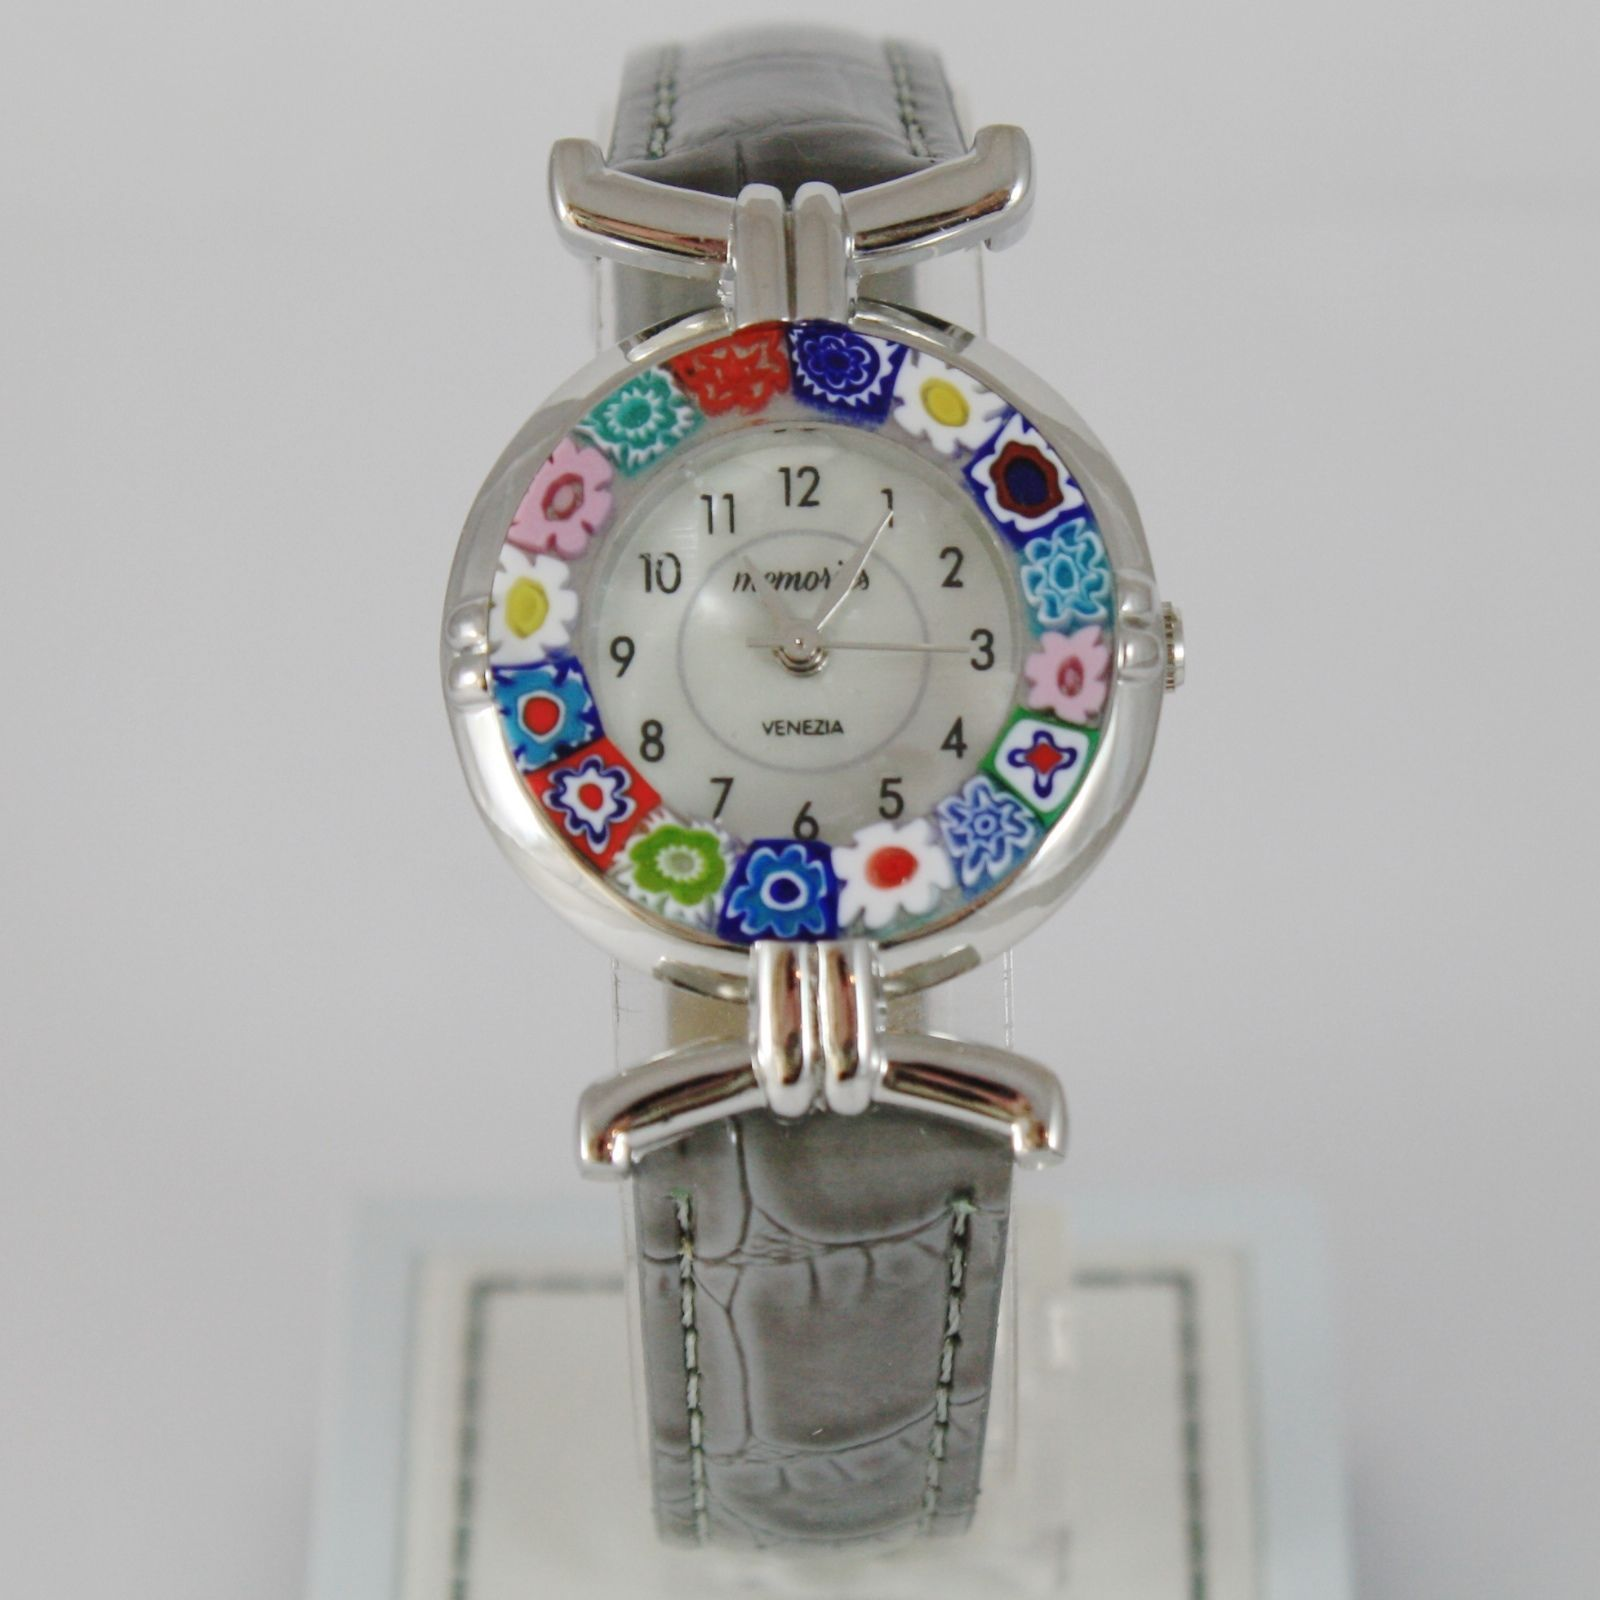 ANTICA MURRINA VENEZIA QUARTZ WATCH 27 MM, GRAY, MURANO FLOWER GLASS